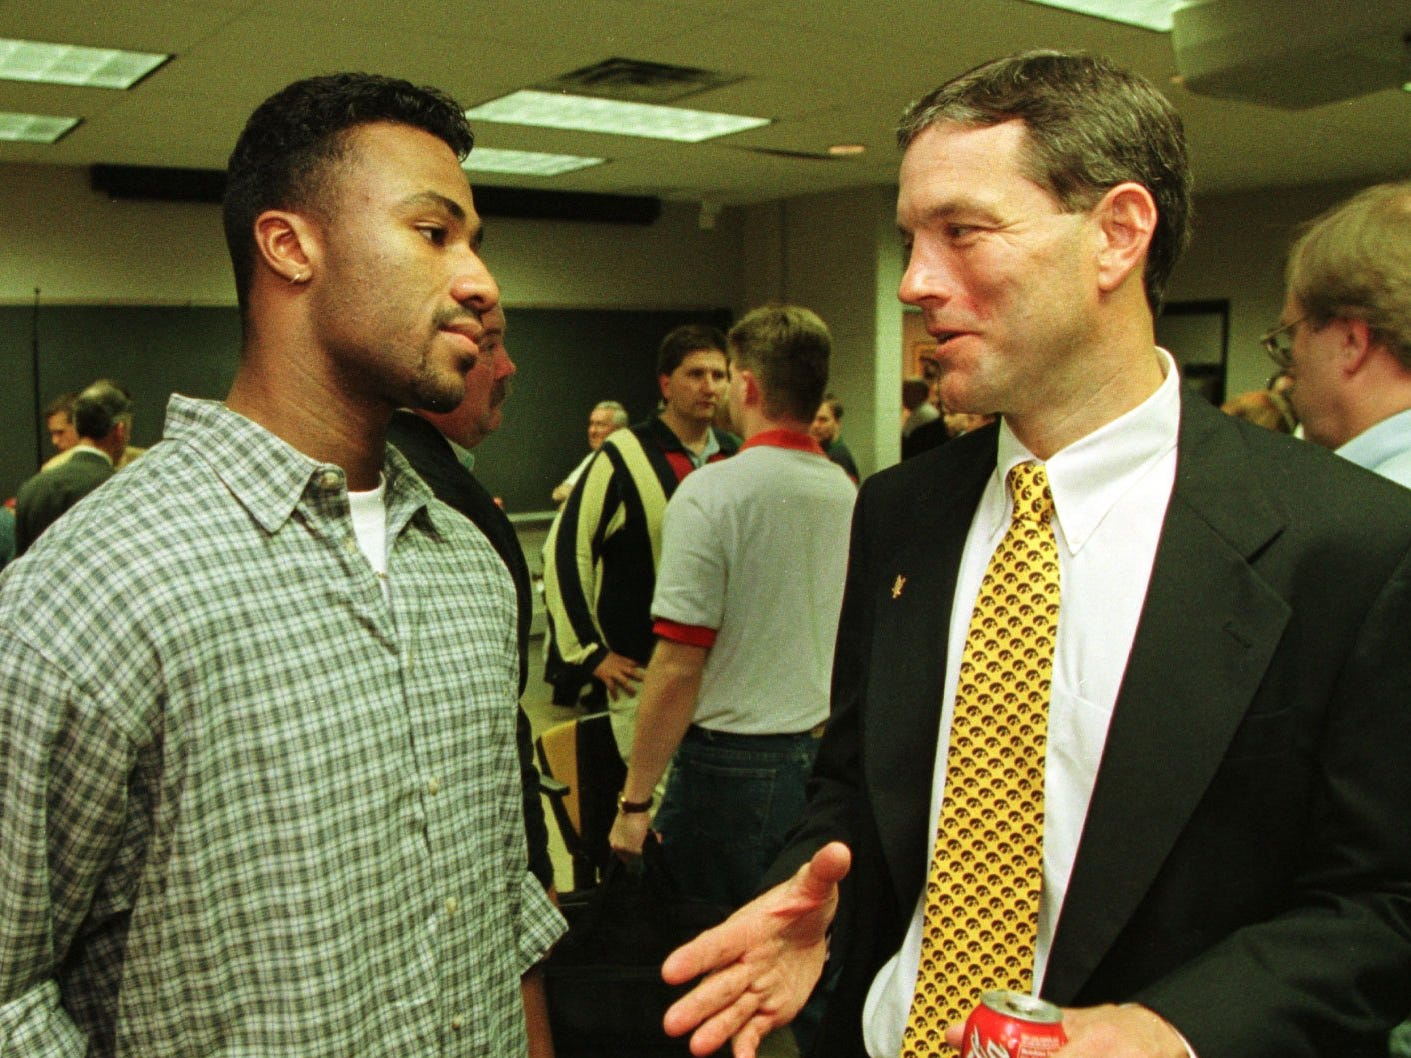 From 1998: New Iowa football coach Kirk Ferentz talks with Hawkeyes wide receiver Kahlil Hill following the press conference in Iowa City where Ferentz was introduced.